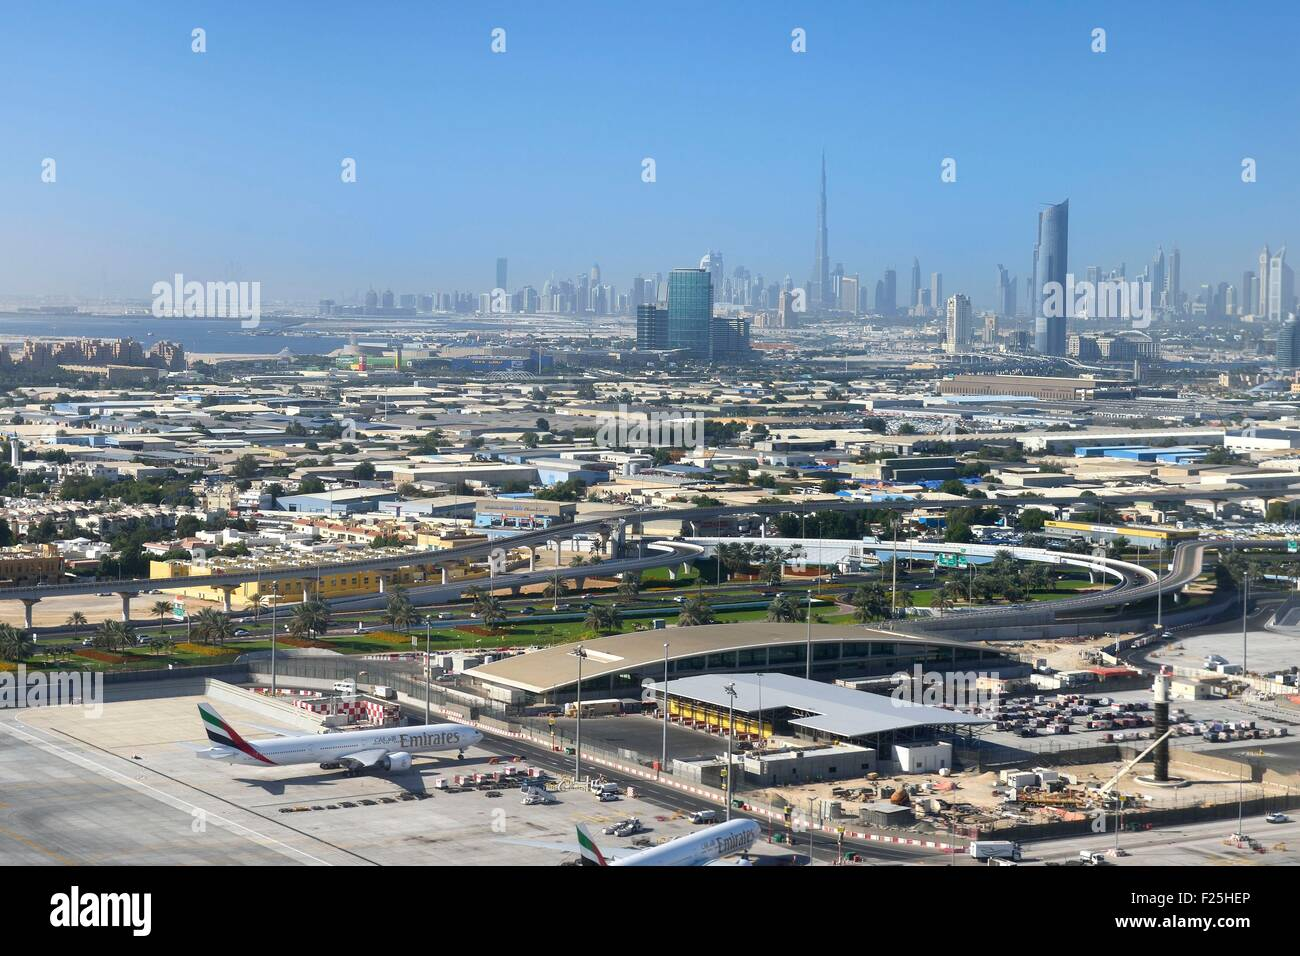 Emirats Arabes Unis, Dubai, l'Aéroport International de Dubaï et du centre-ville en arrière-plan Photo Stock